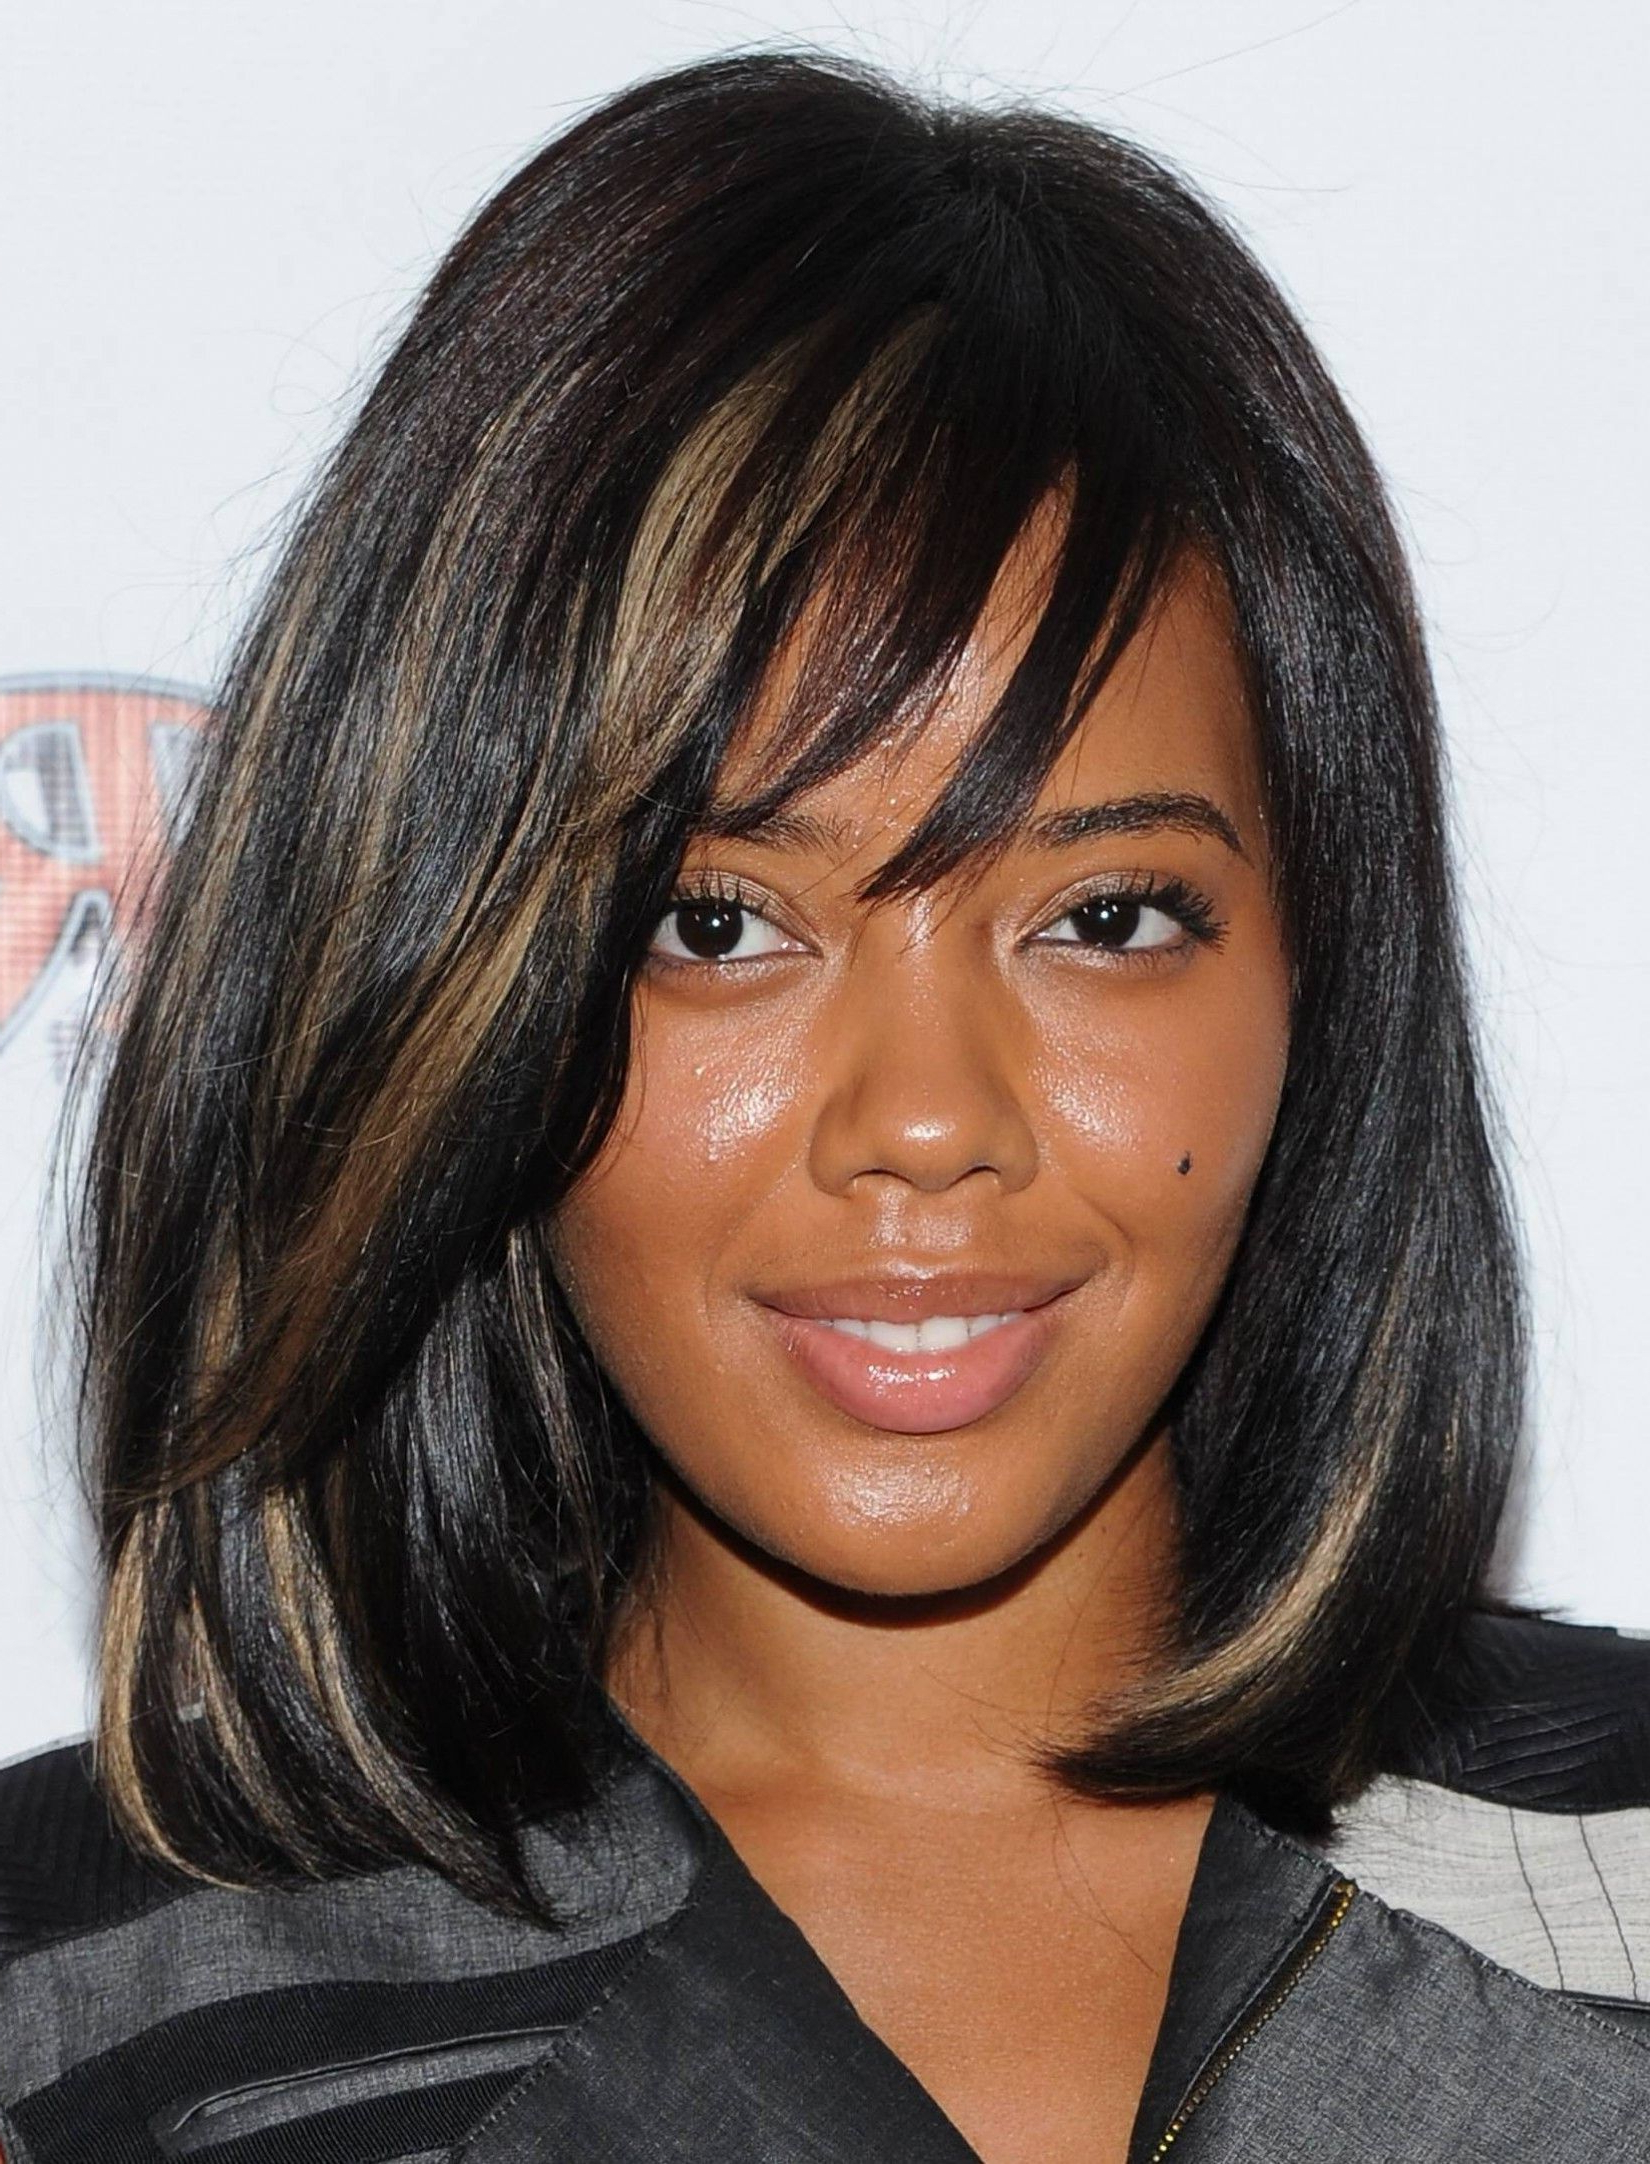 Widely Used Black Women Medium Hairstyles Inside 25 Medium Hairstyles For Girls With Straight Hair (View 3 of 20)